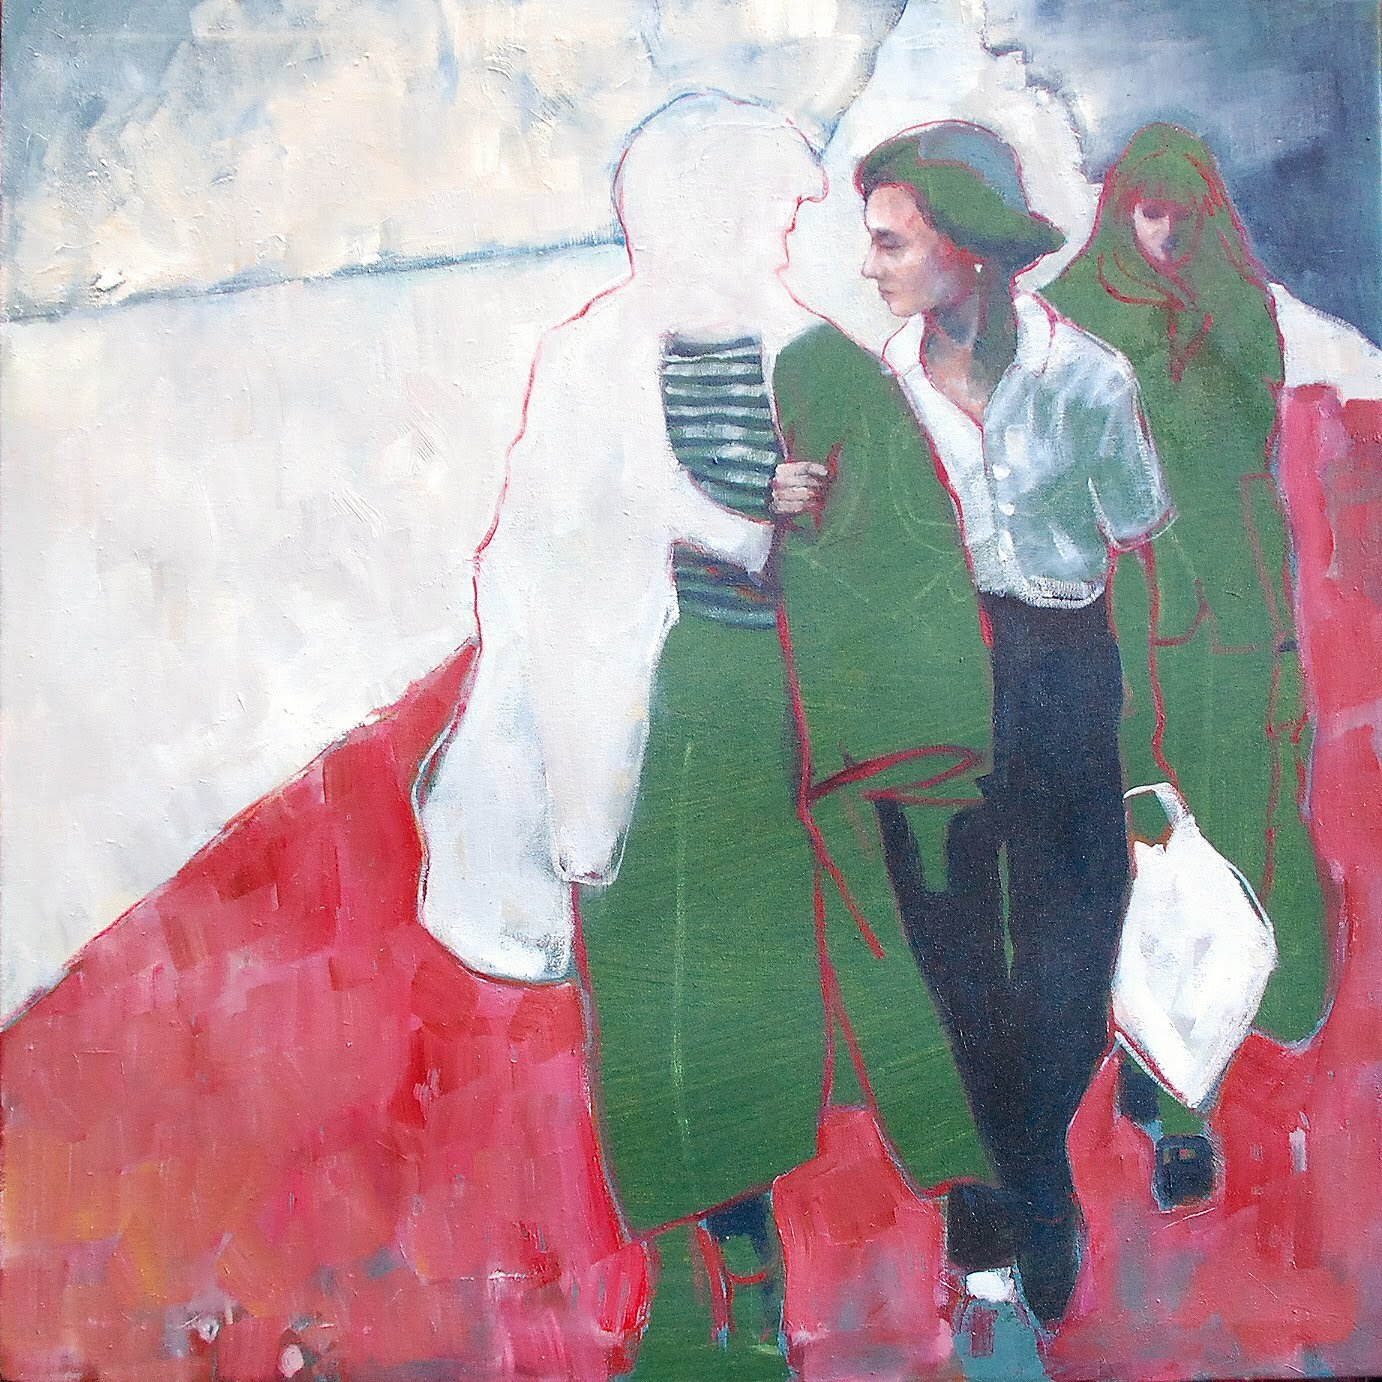 Artist: Amy Dury  Title: Lucy, Lucy, Ruth  Size: 60 x 60 cm  Medium: Oil on canvas  Price: £600